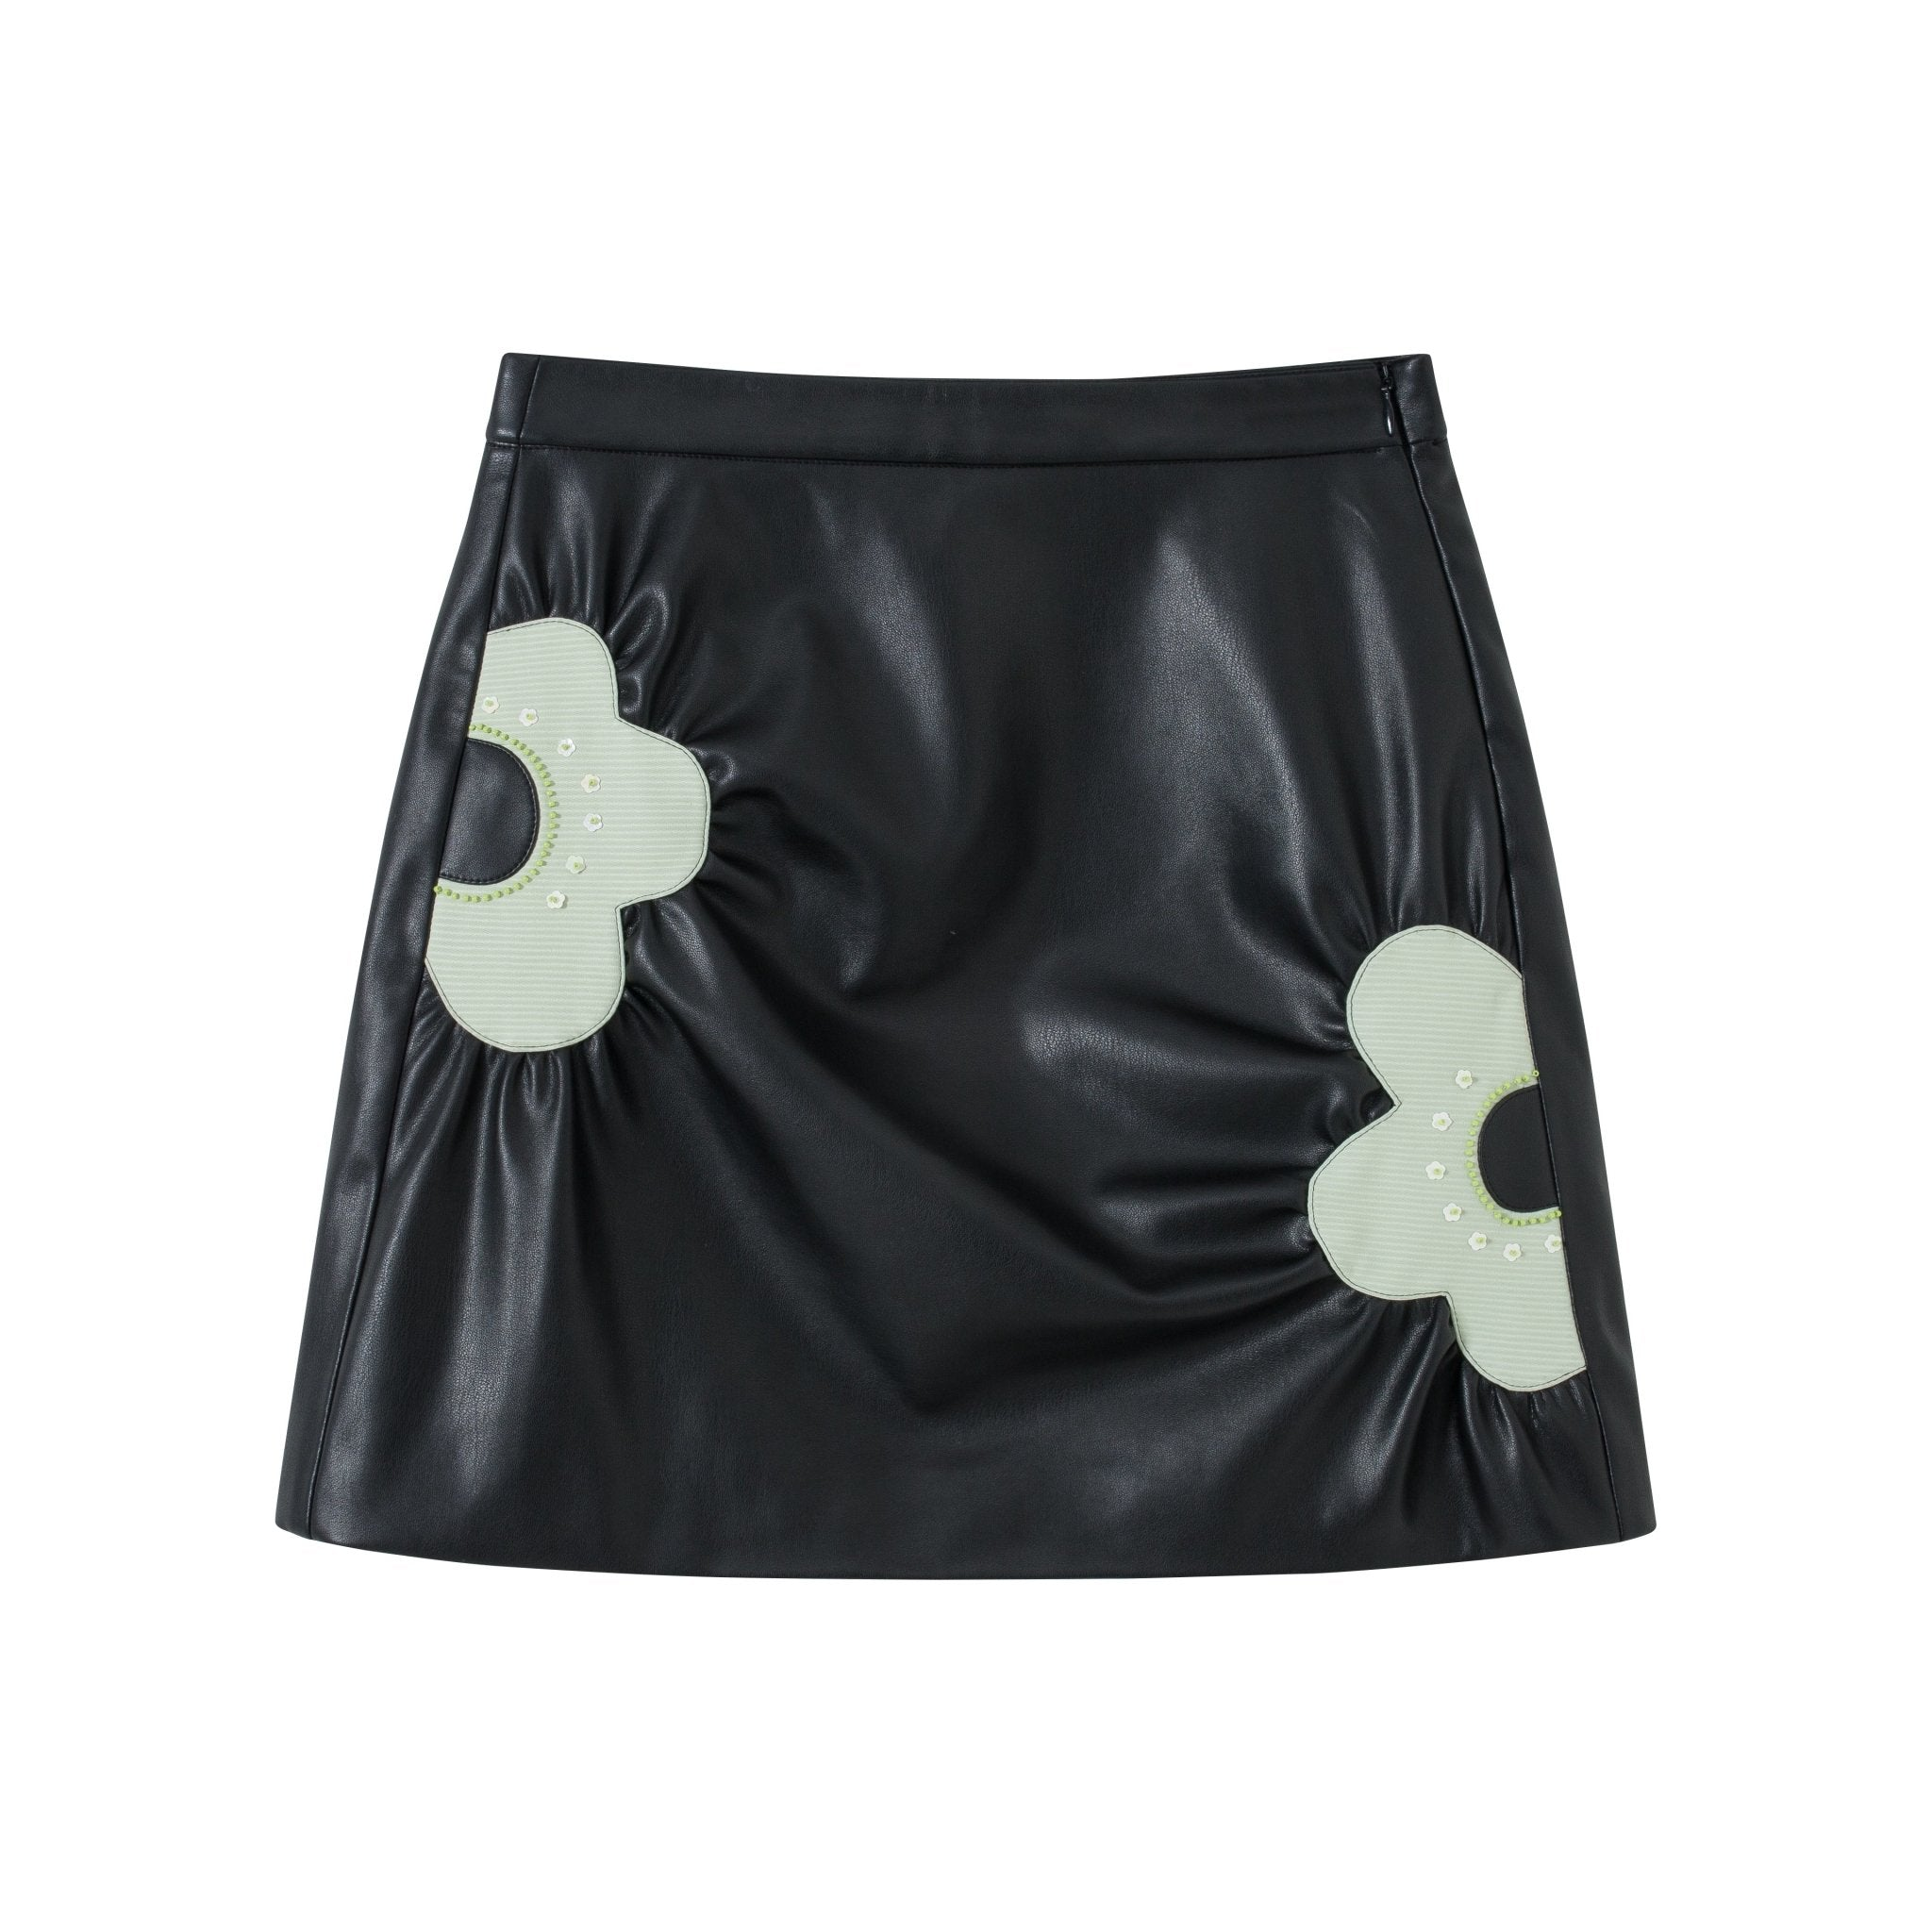 VIAS HERLIAN Black Flower Leather Skirts | MADA IN CHINA